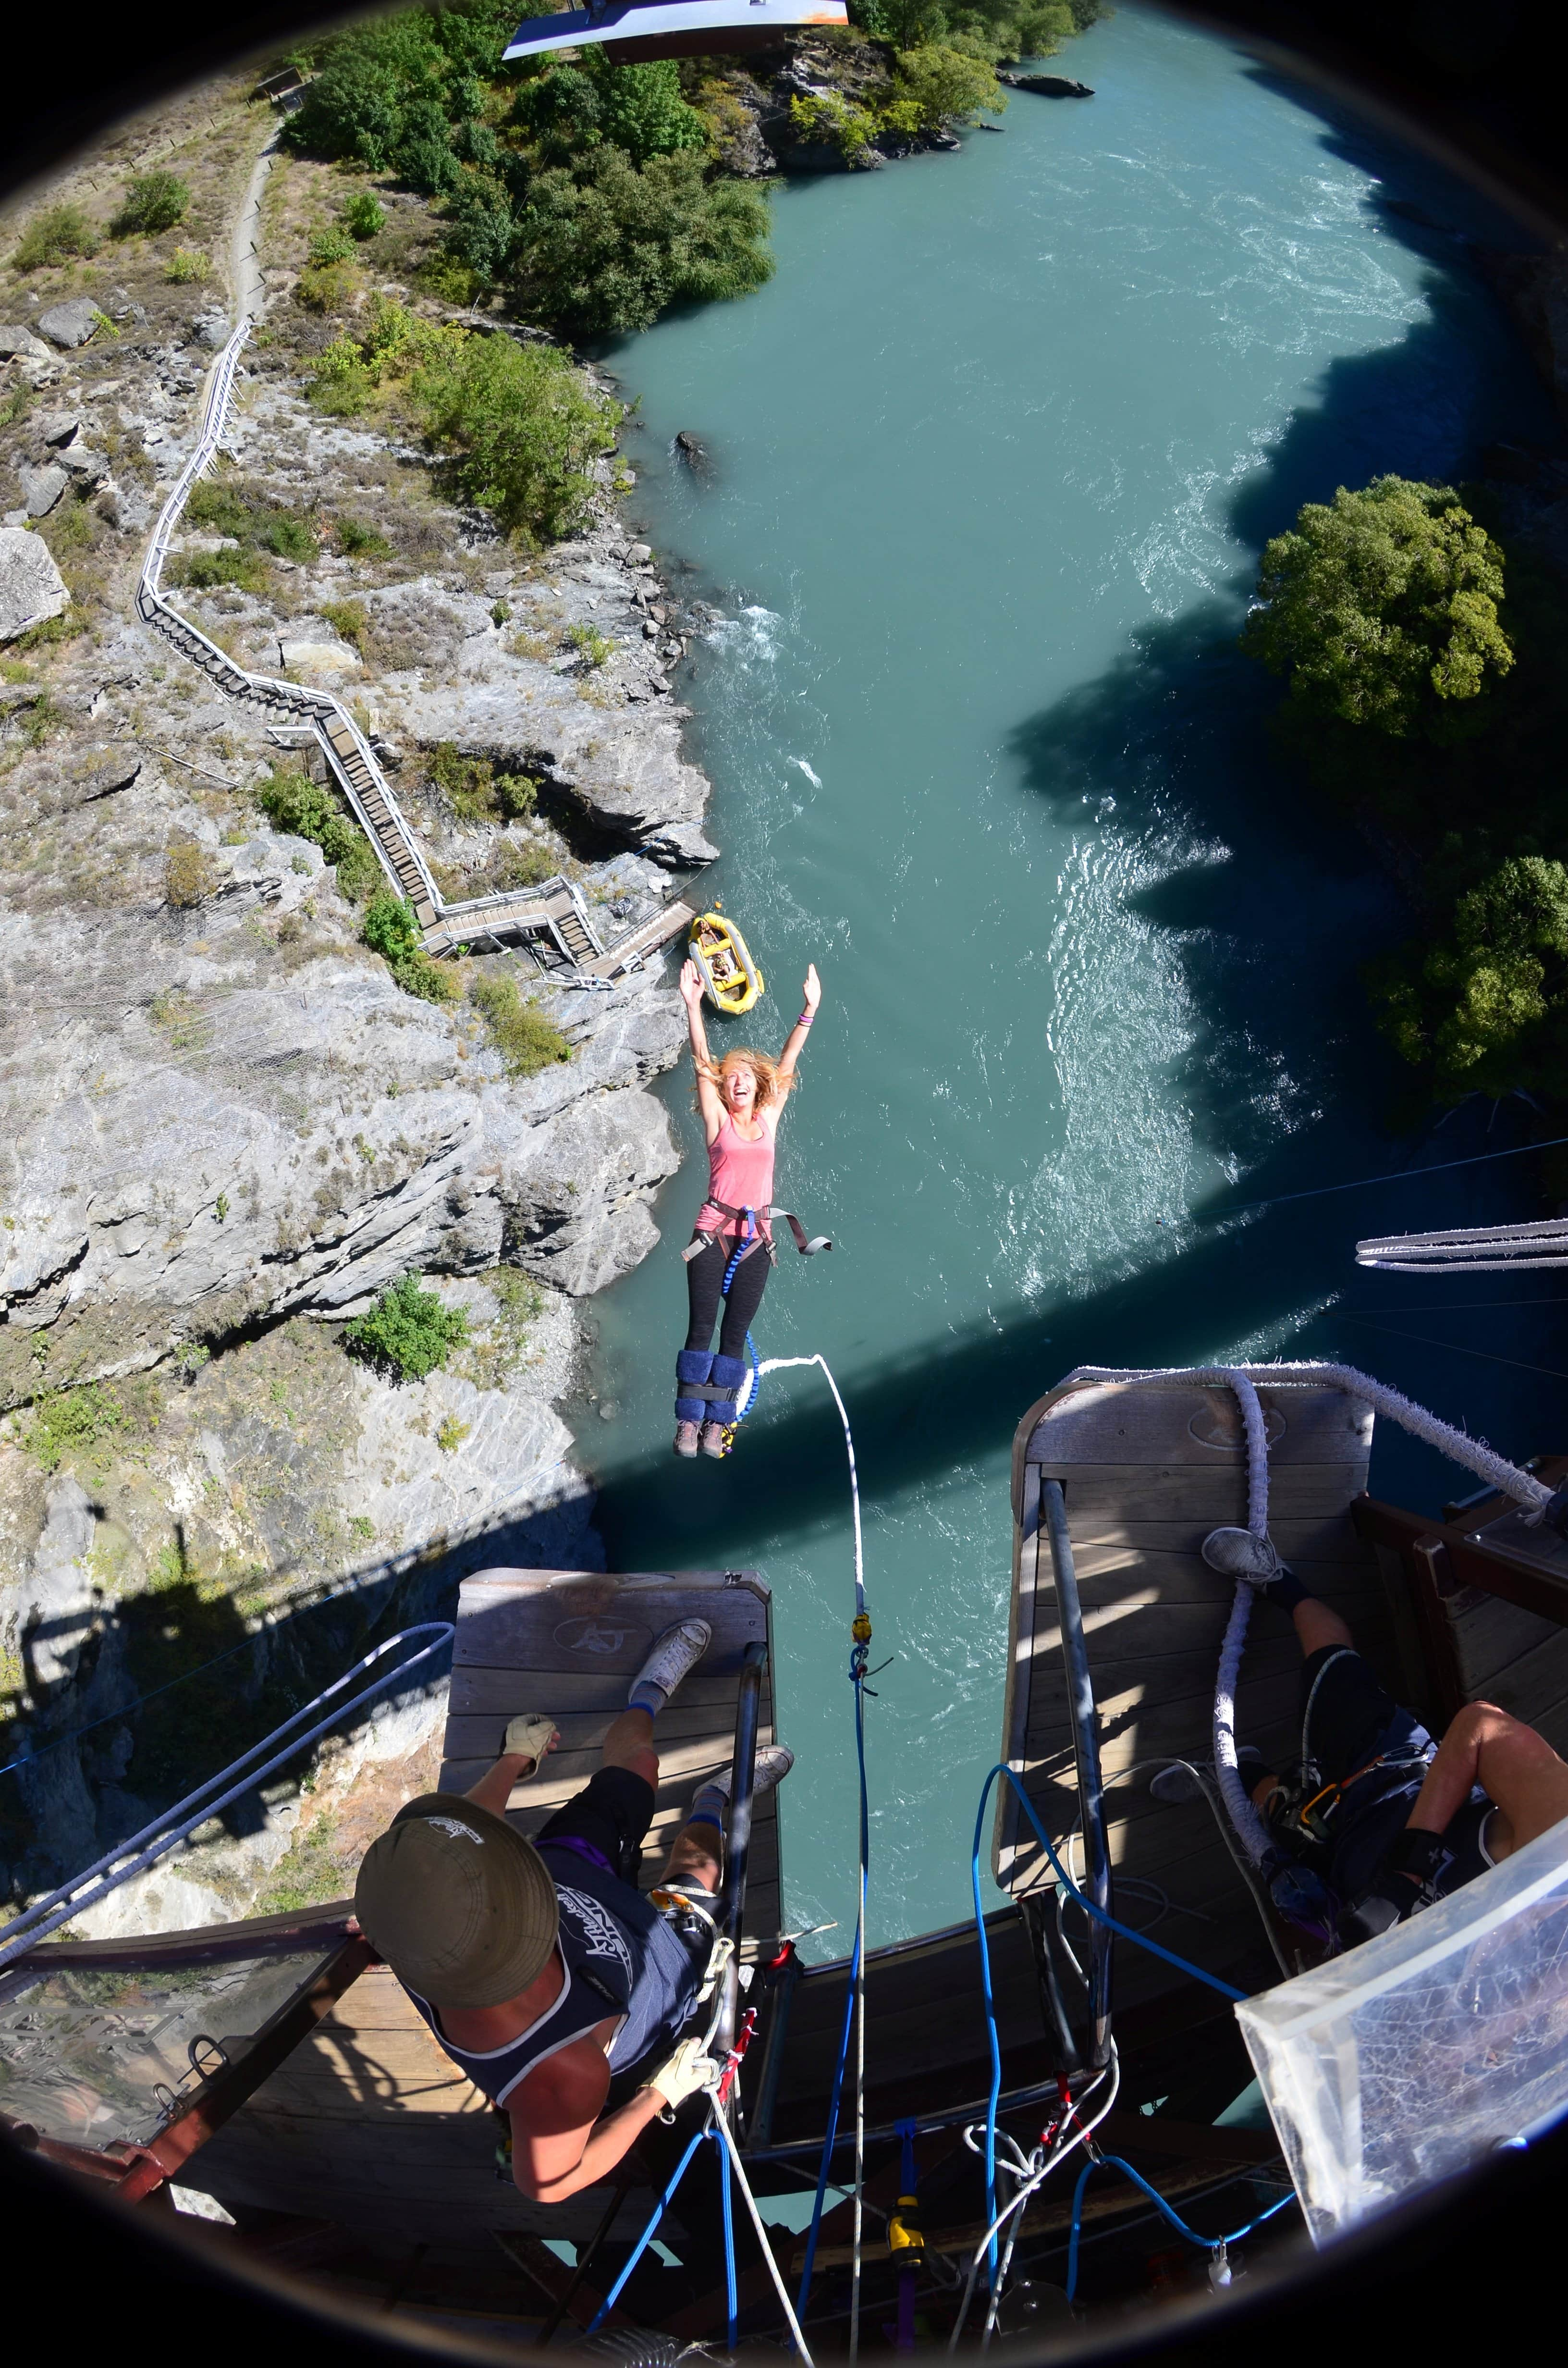 The Original Bungy Jump with AJ Hackett!